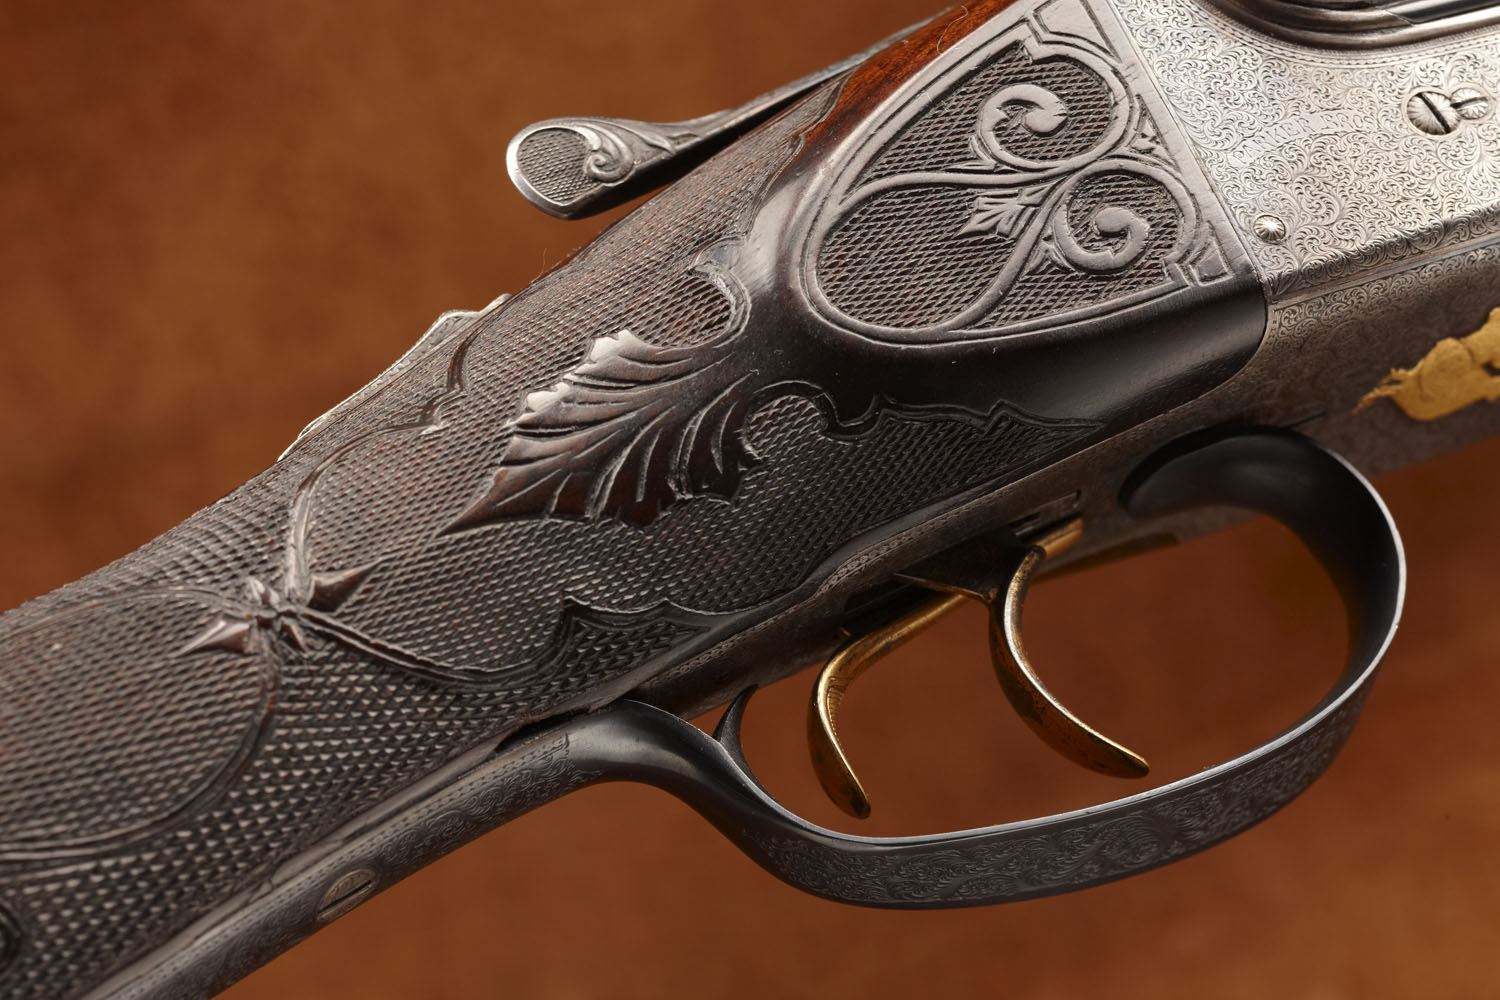 Parker's Invincibles: The Finest American Shotguns (3 of 3)